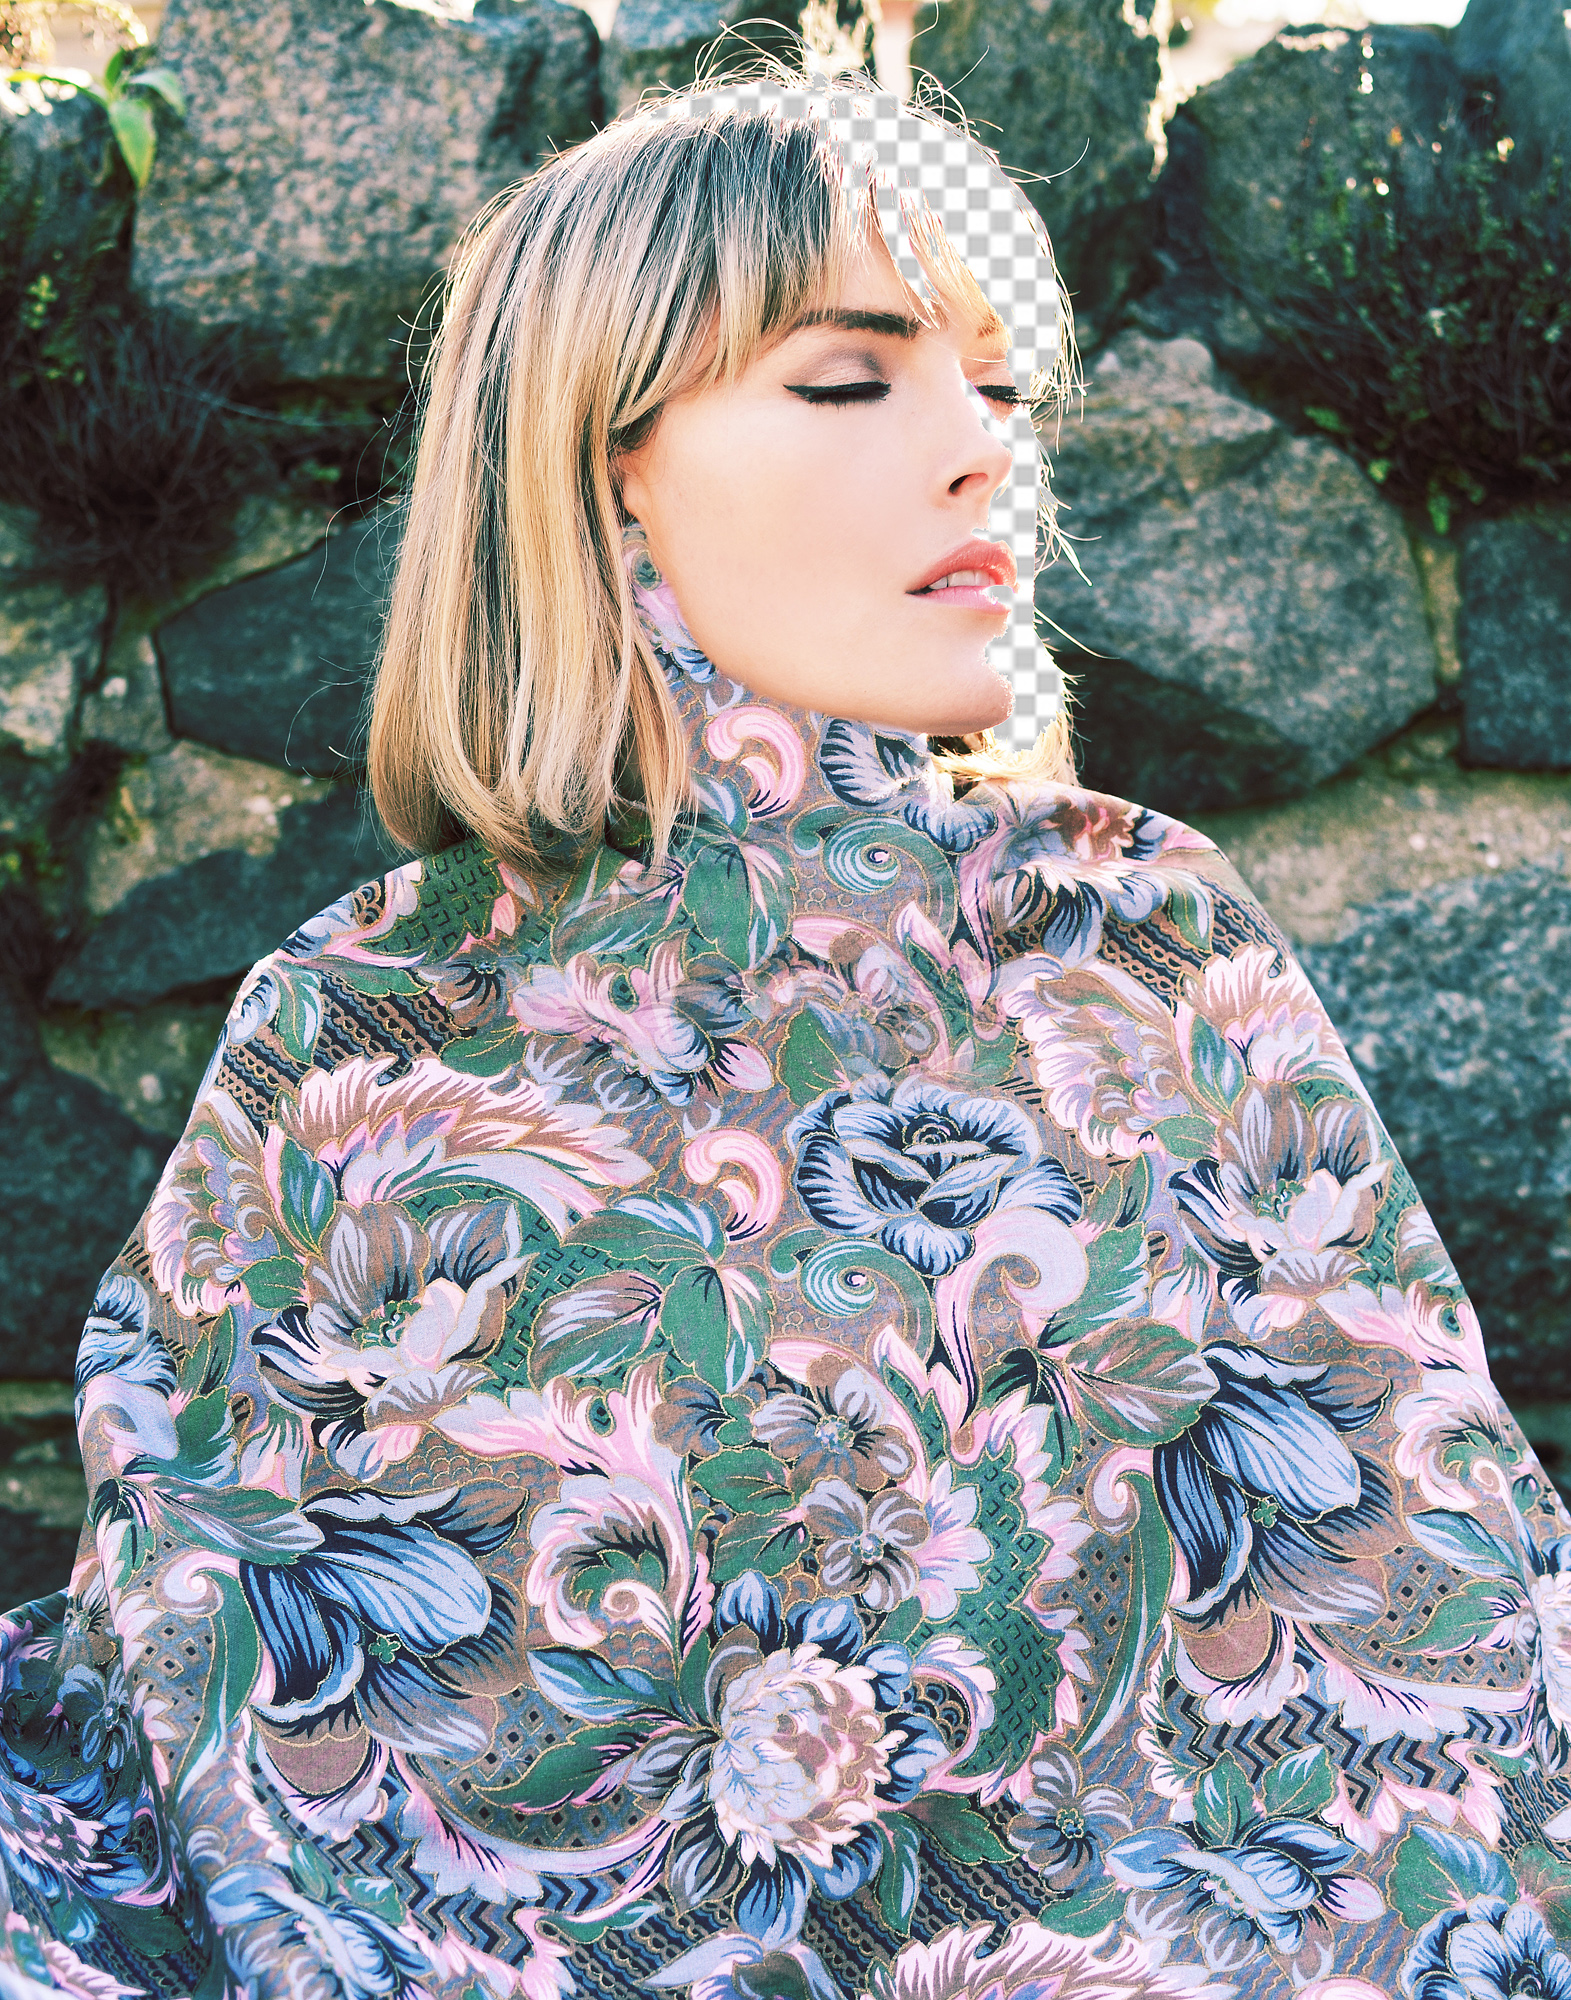 Gwenno Interview - the former Pipettes front-woman Gwenno